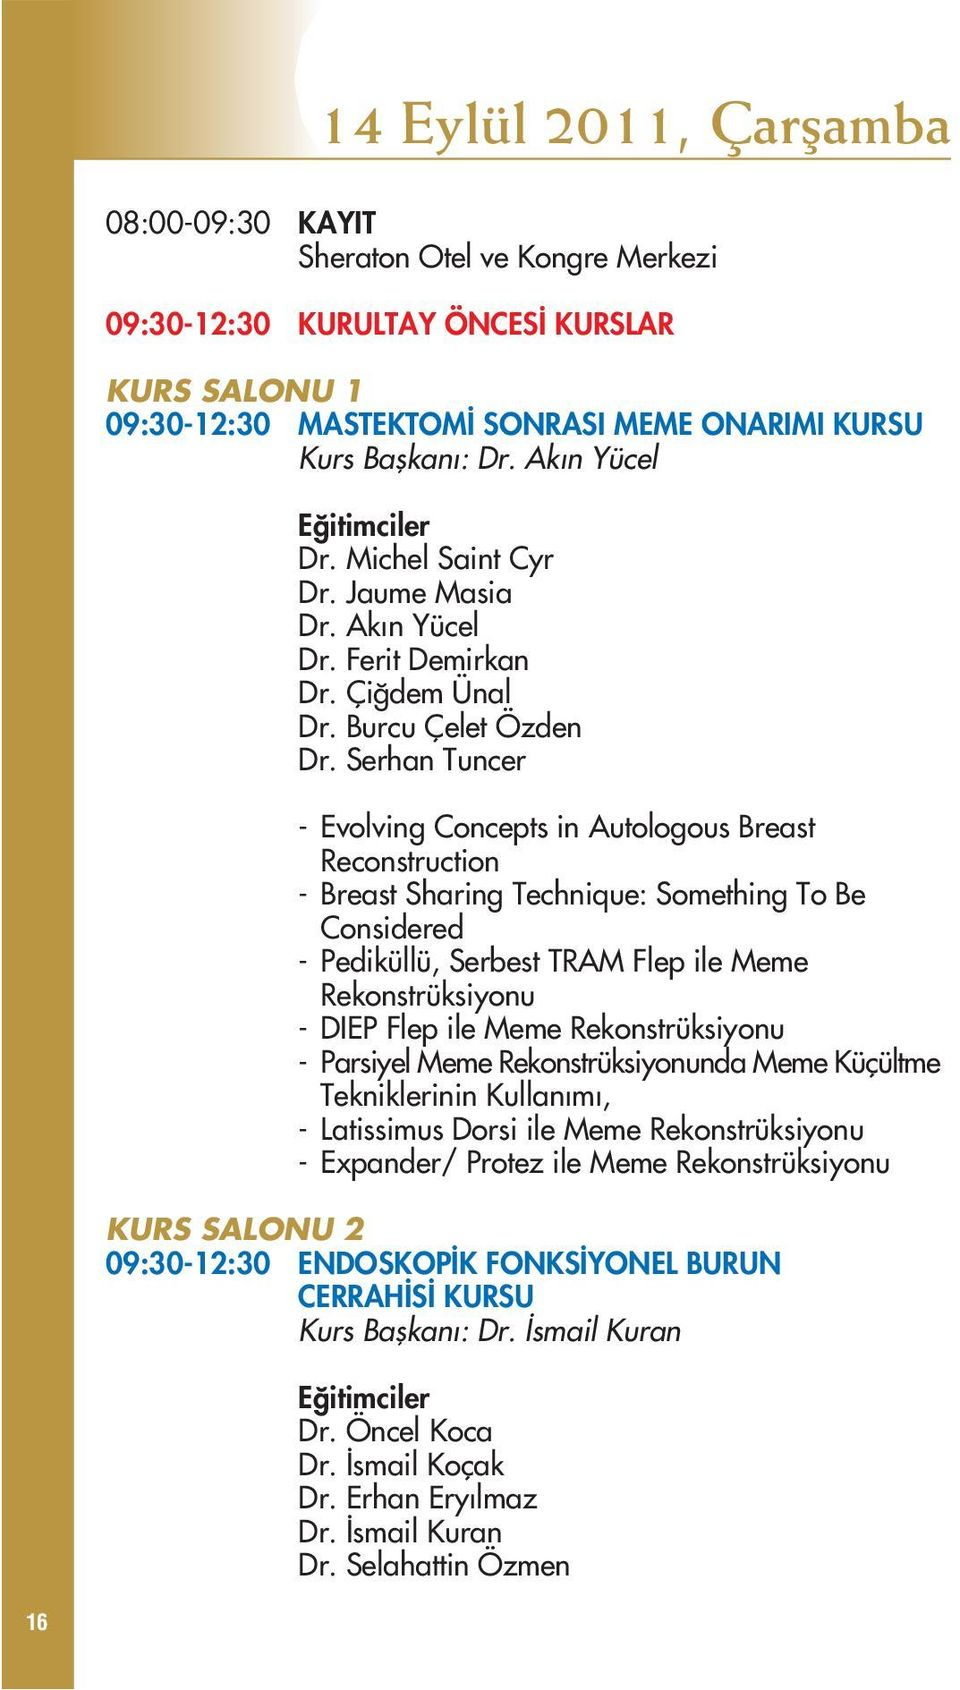 Serhan Tuncer - Evolving Concepts in Autologous Breast Reconstruction - Breast Sharing Technique: Something To Be Considered - Pediküllü, Serbest TRAM Flep ile Meme Rekonstrüksiyonu - DIEP Flep ile